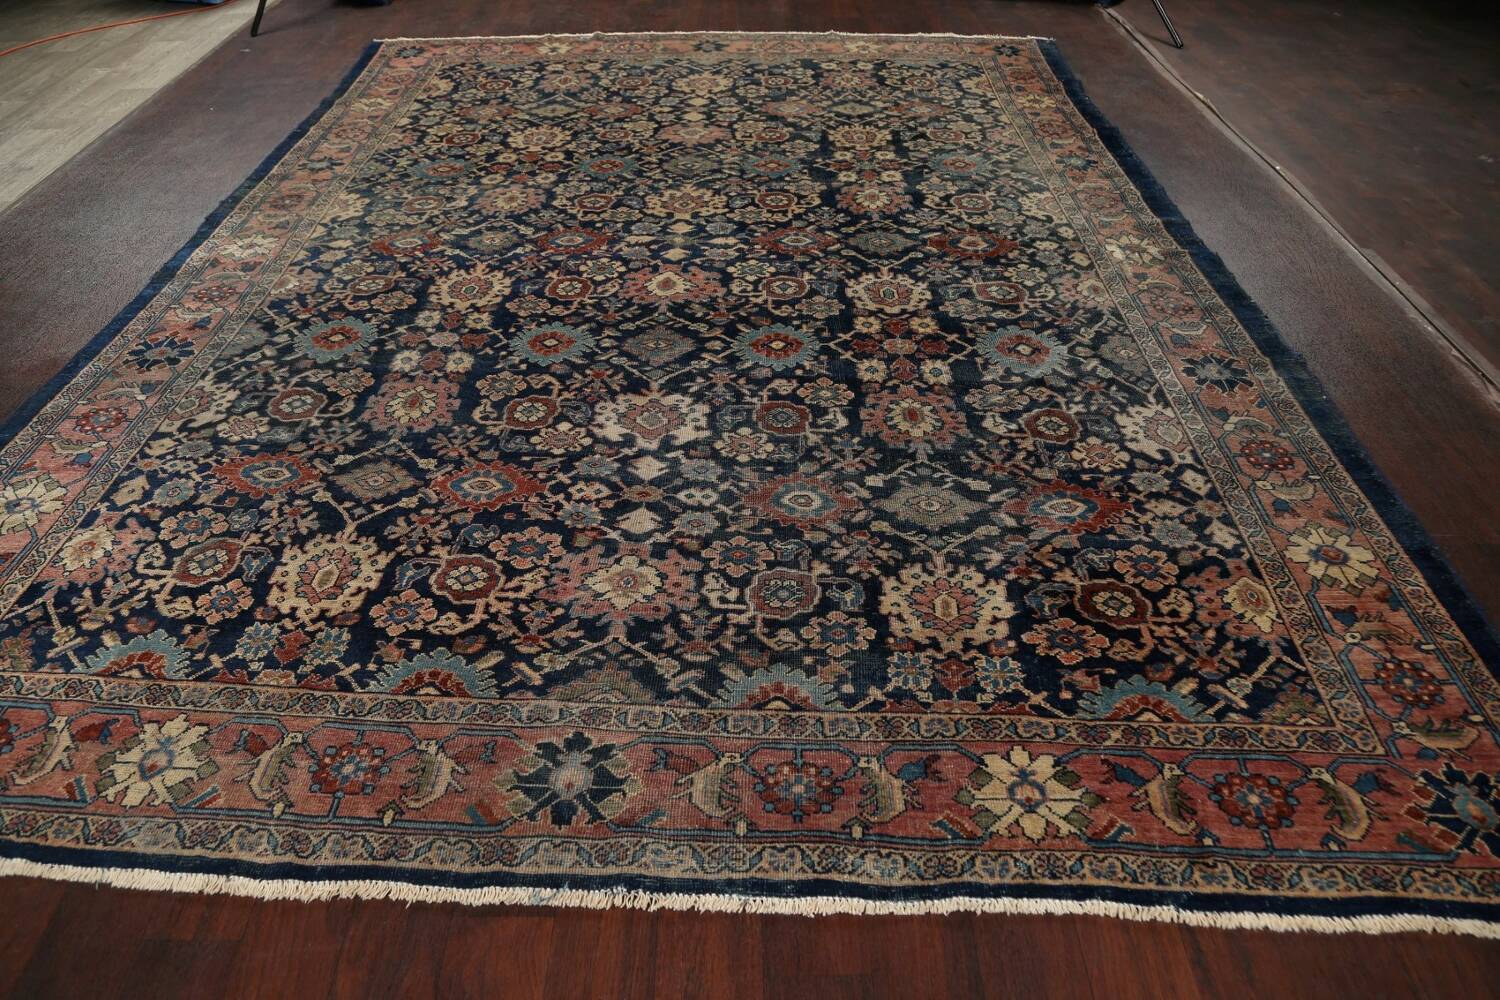 Pre-1900 Antique Vegetable Dye Sultanabad Persian Area Rug 10x13 image 15